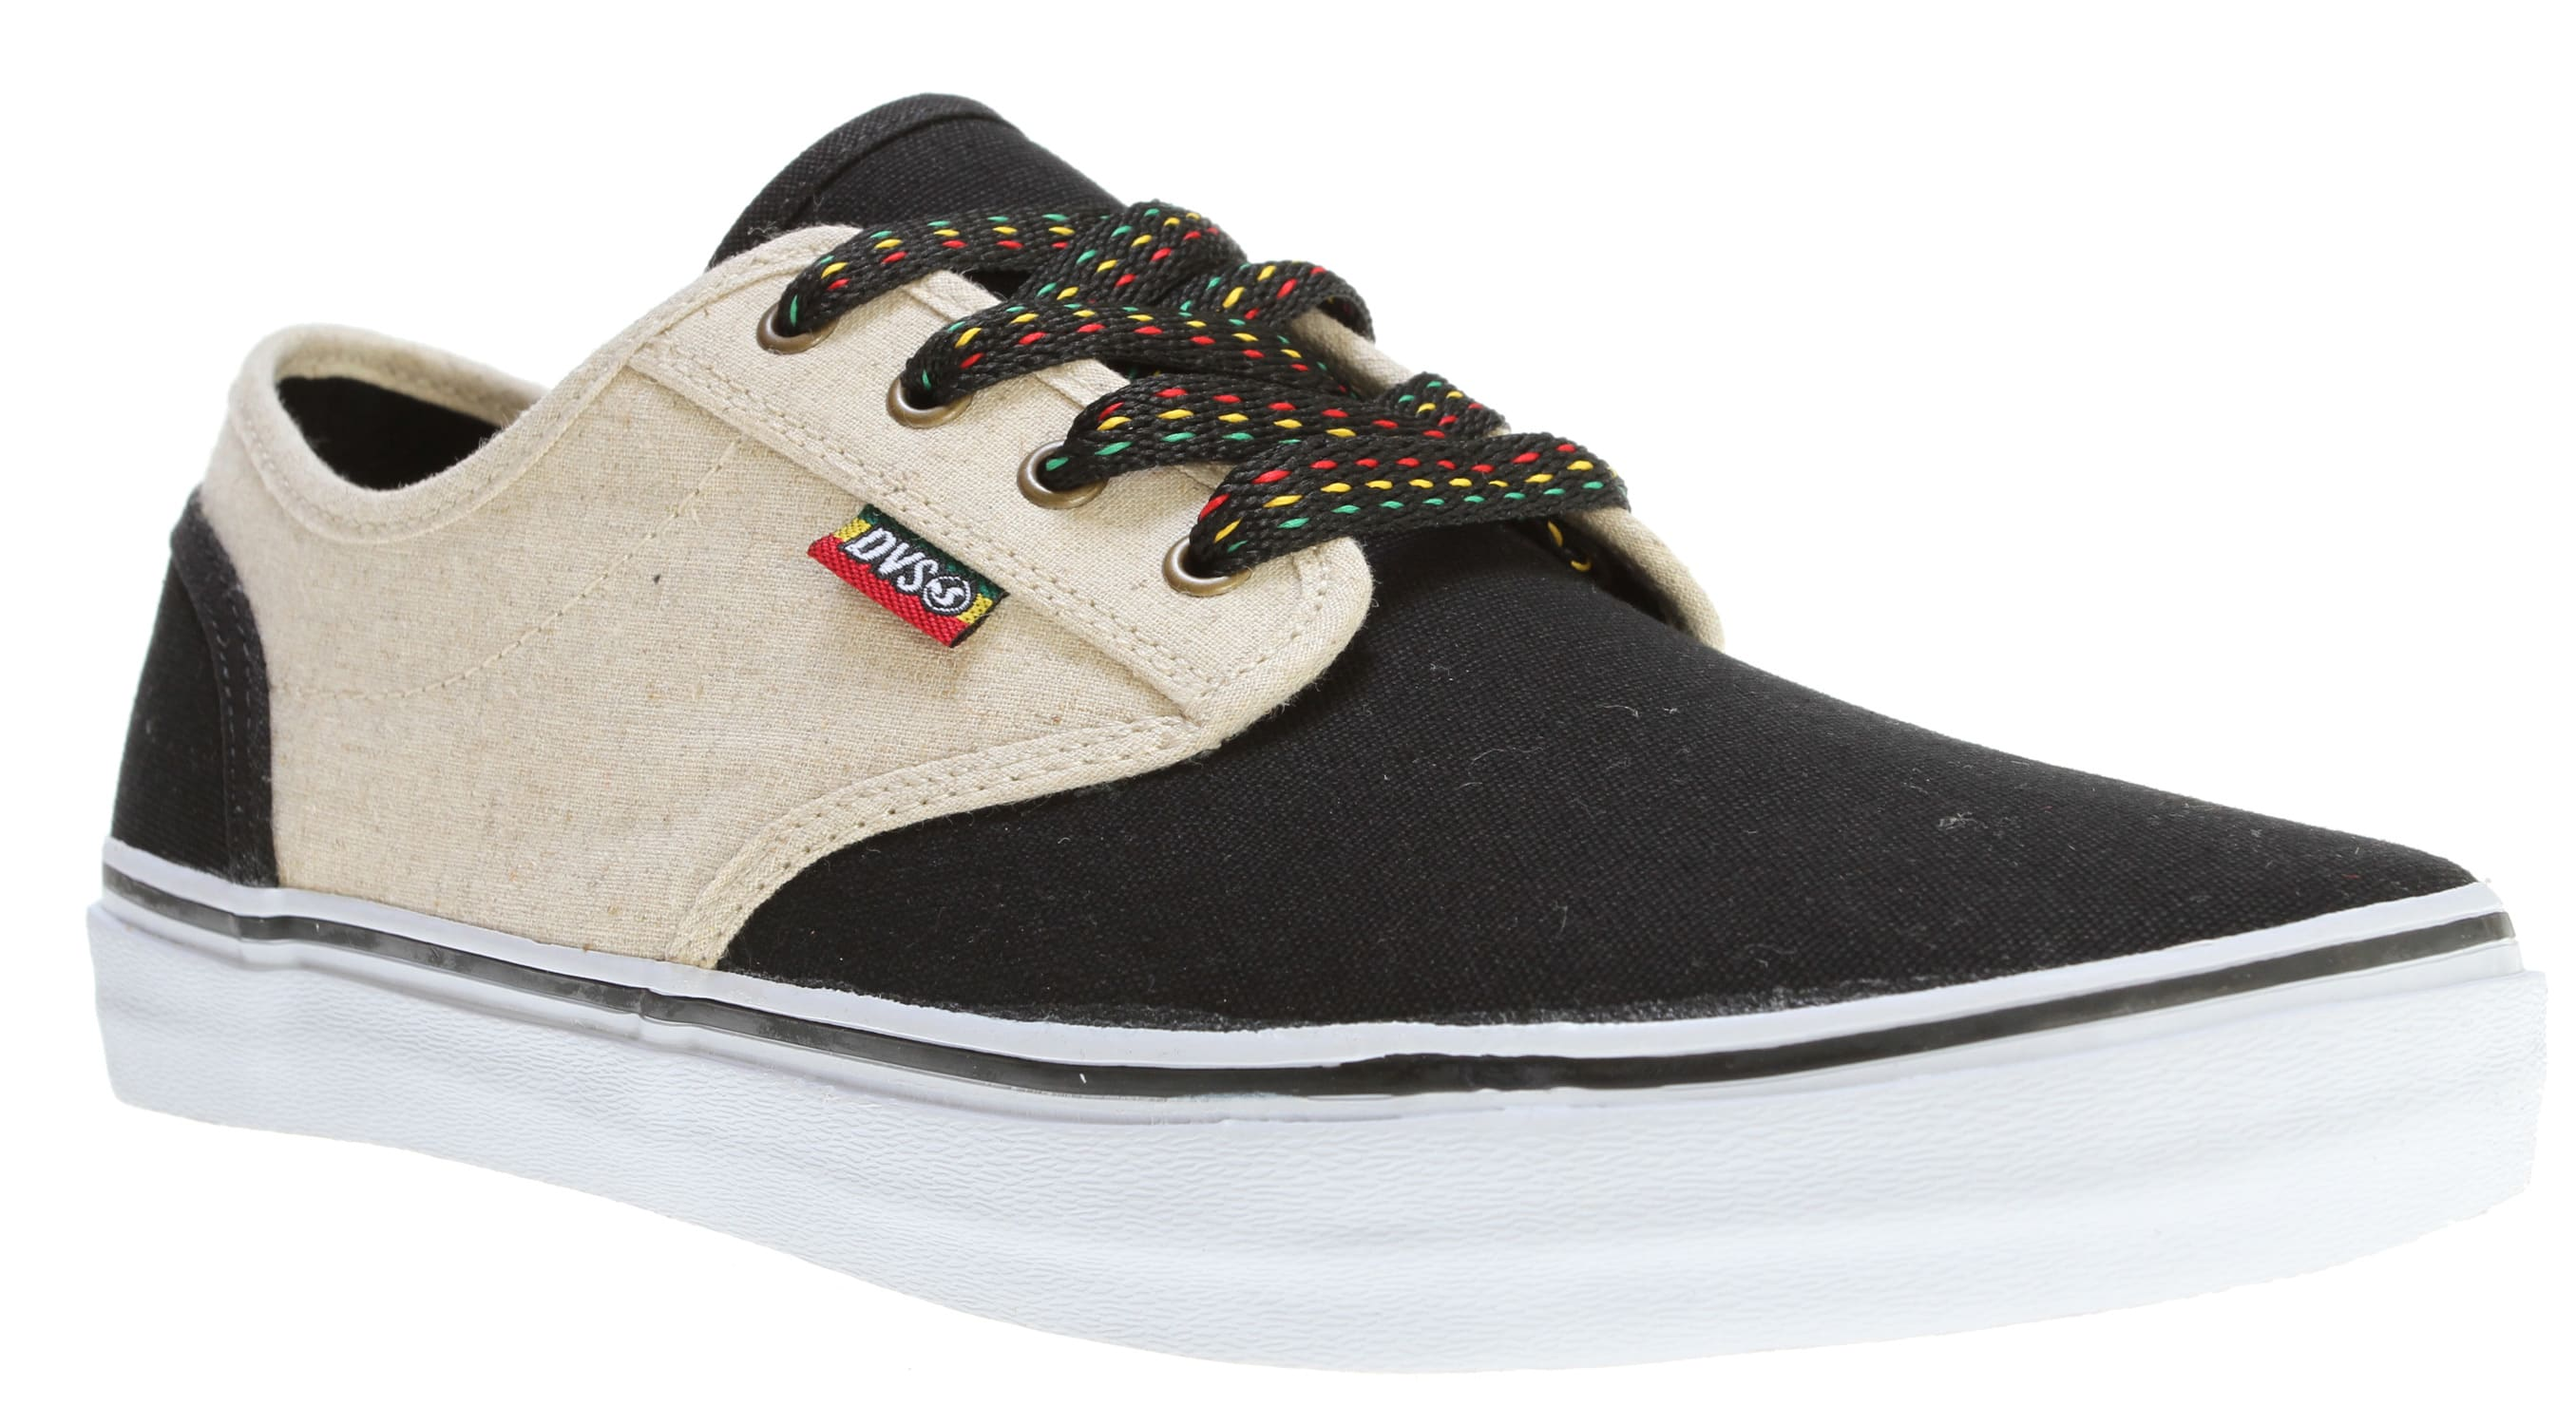 DVS Rico CT Skate Shoe DVS Discount Outlet High Quality 2CRLN5Ly